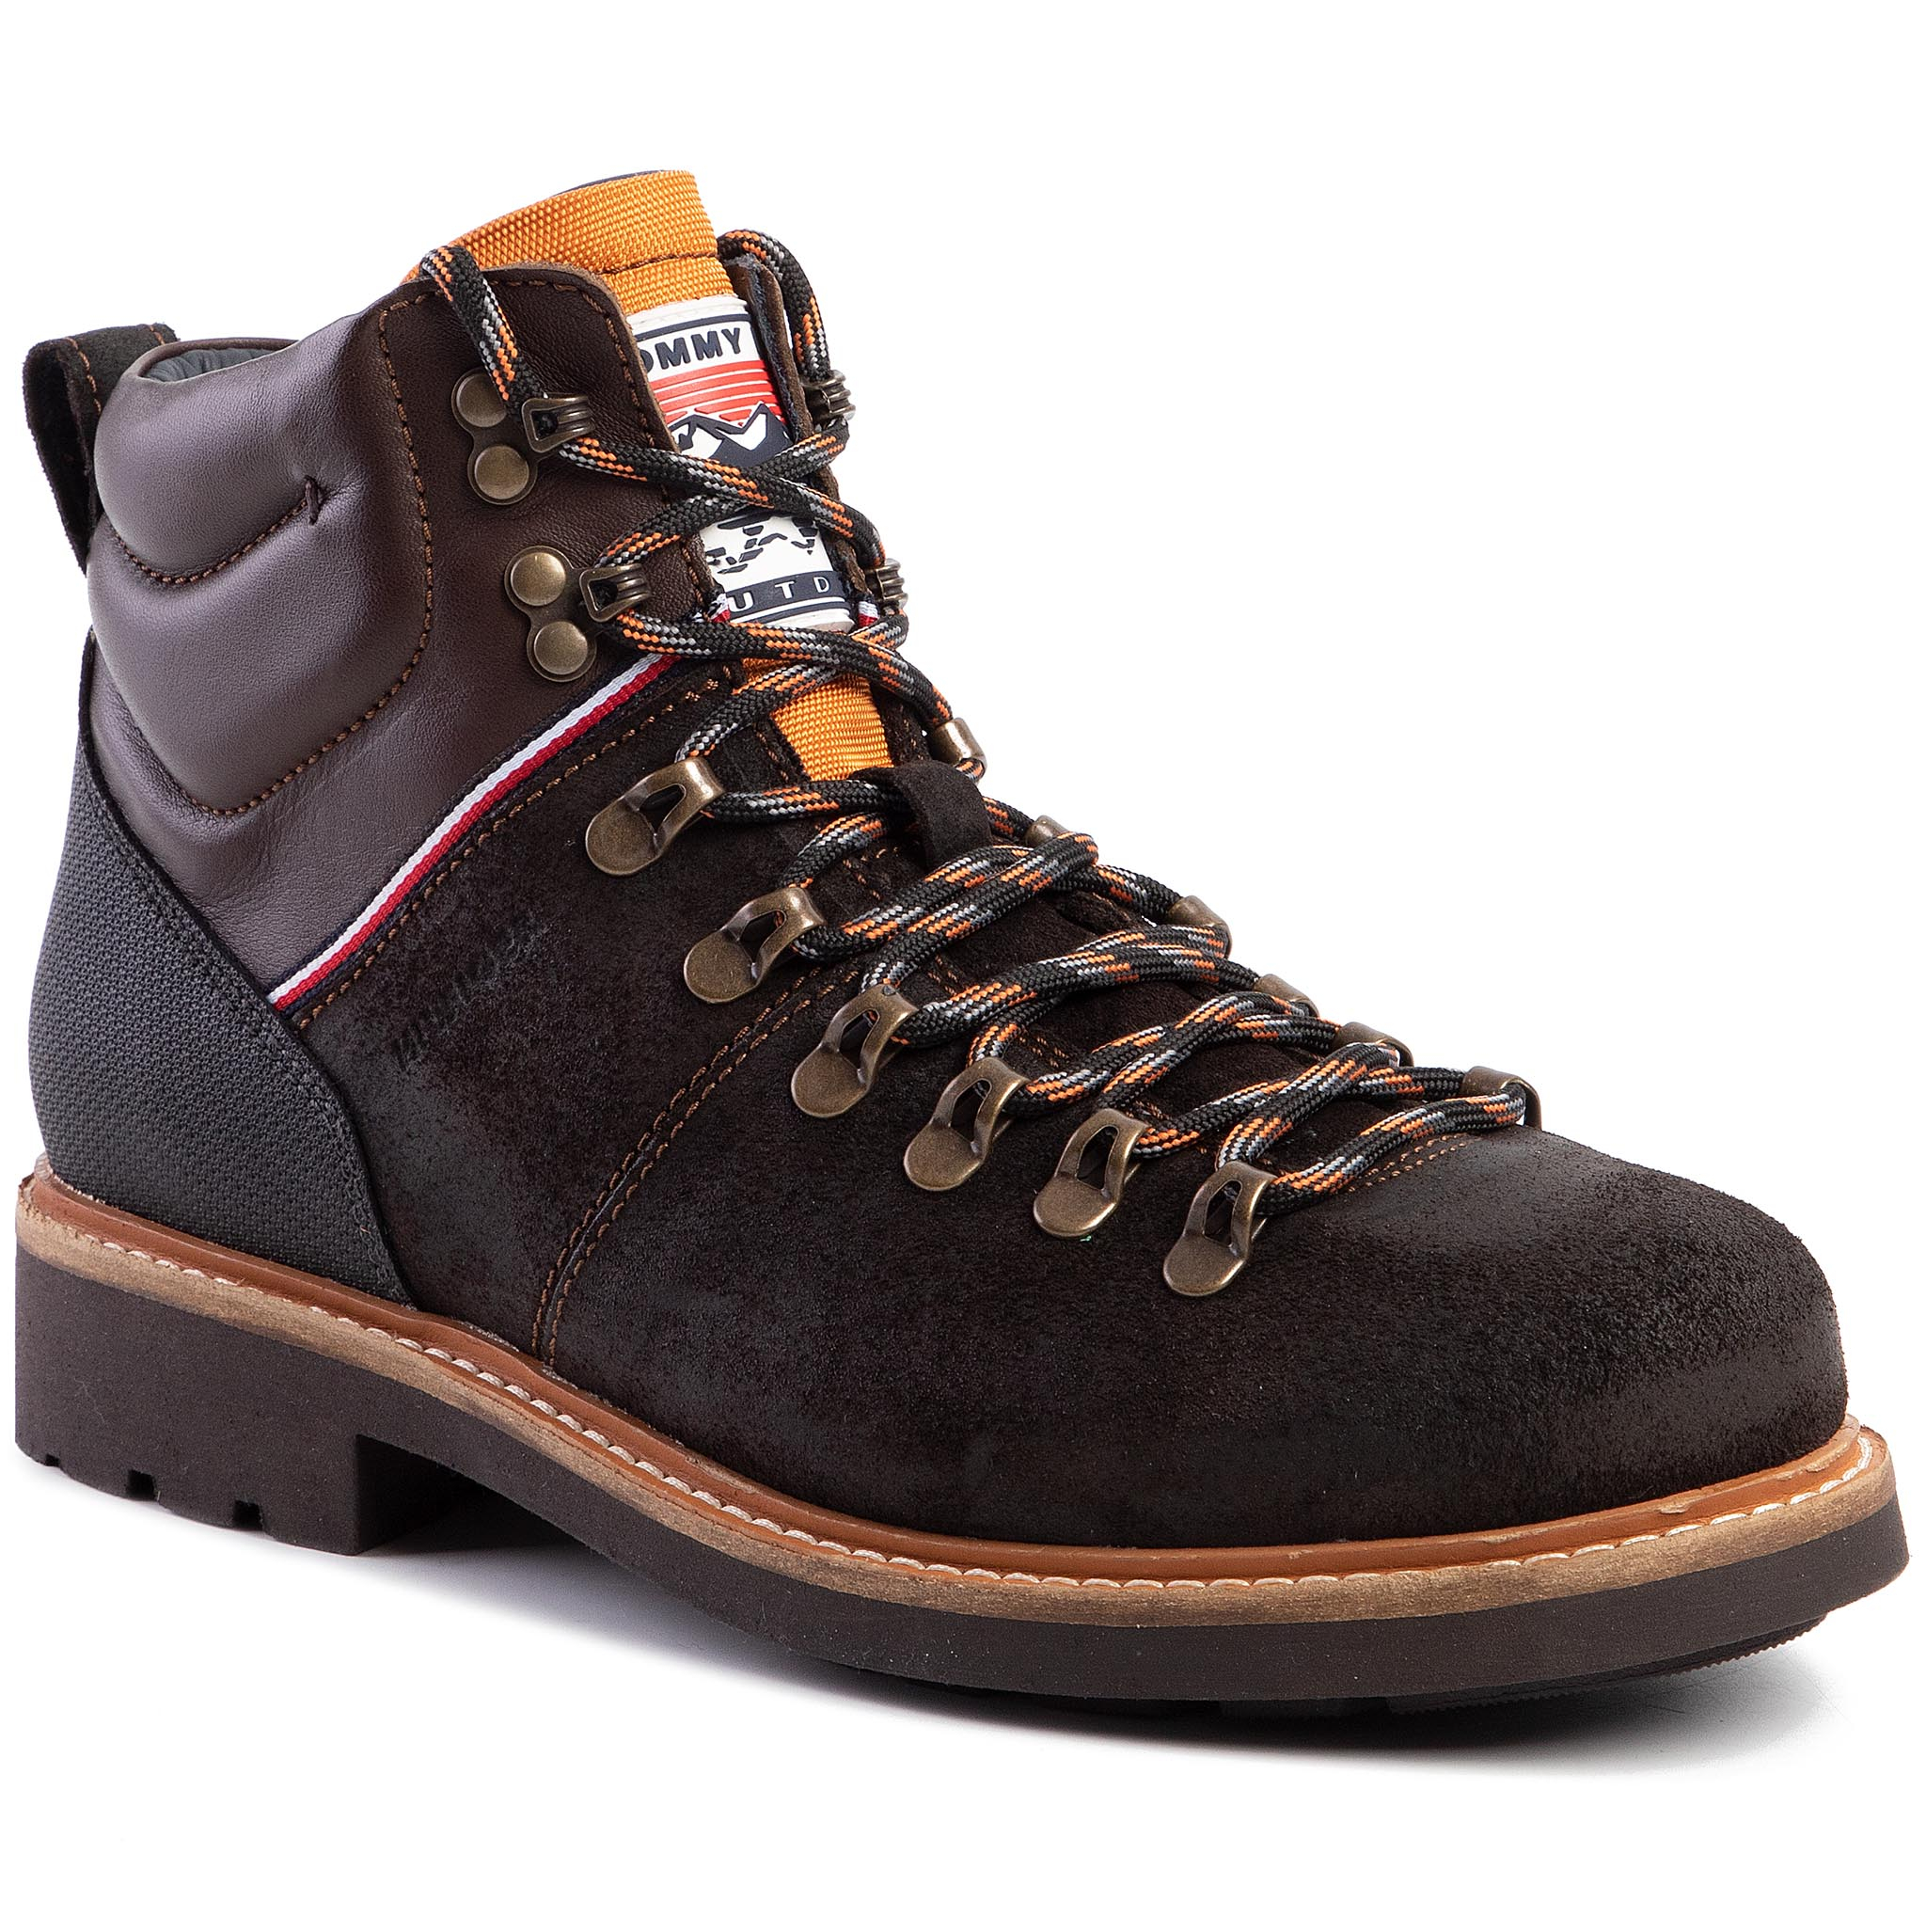 Cizme TOMMY HILFIGER - Suede Material Mix Hiking Boot FM0FM02589 Chocolate HJT